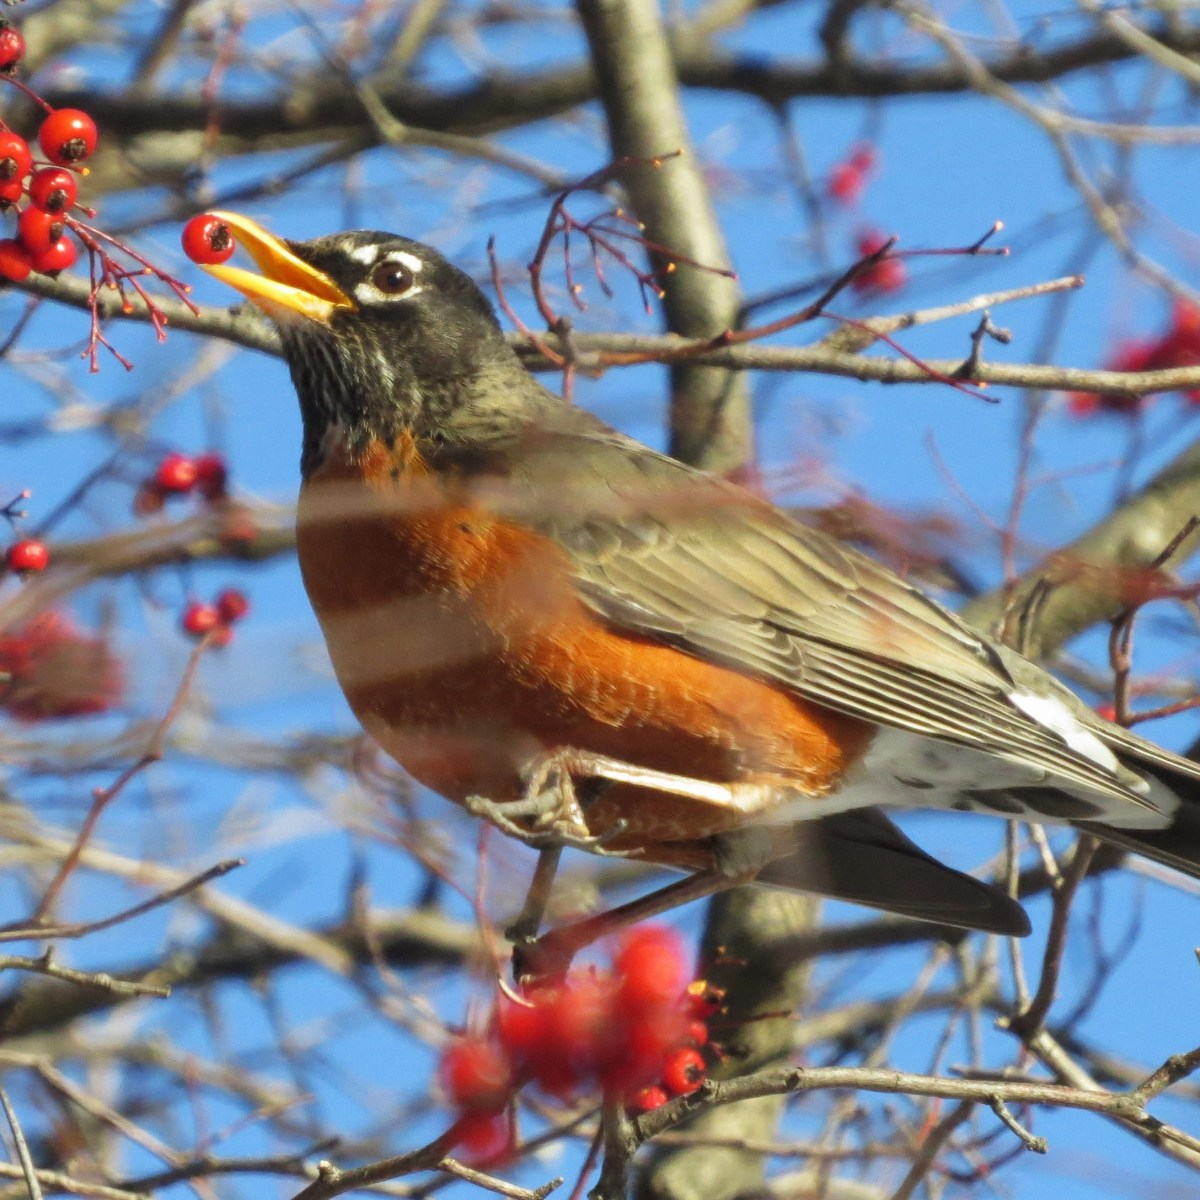 A Robin eats red berries from a tree, it has one berry in its beak